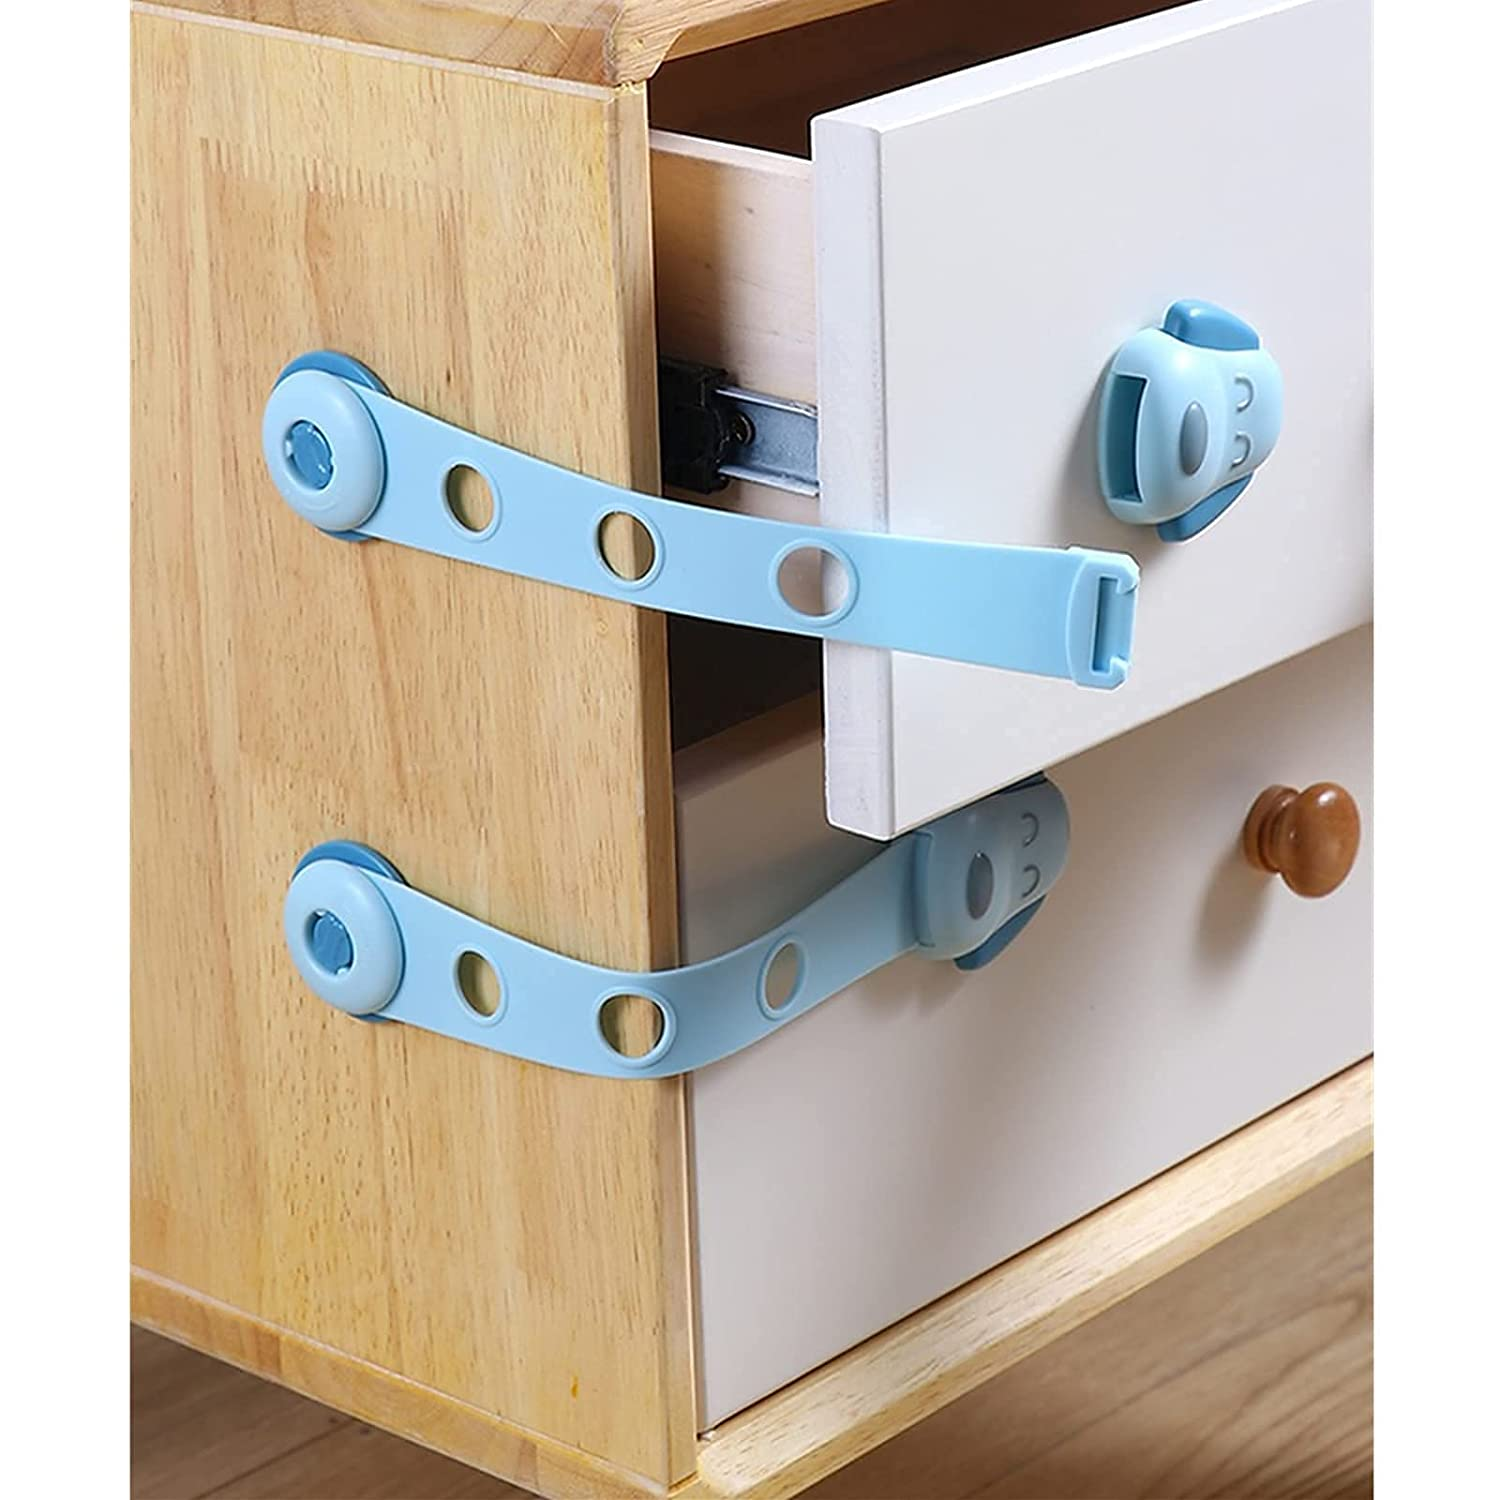 Baby proofing Cabinet Locks – Child Safety Strap Locks (4 Pack), Adjustable & no Drilling Adhesive Latches for Cabinets, Fridge, Drawers, Dishwasher, Toilet etc. Cute Child Lock by moooope.